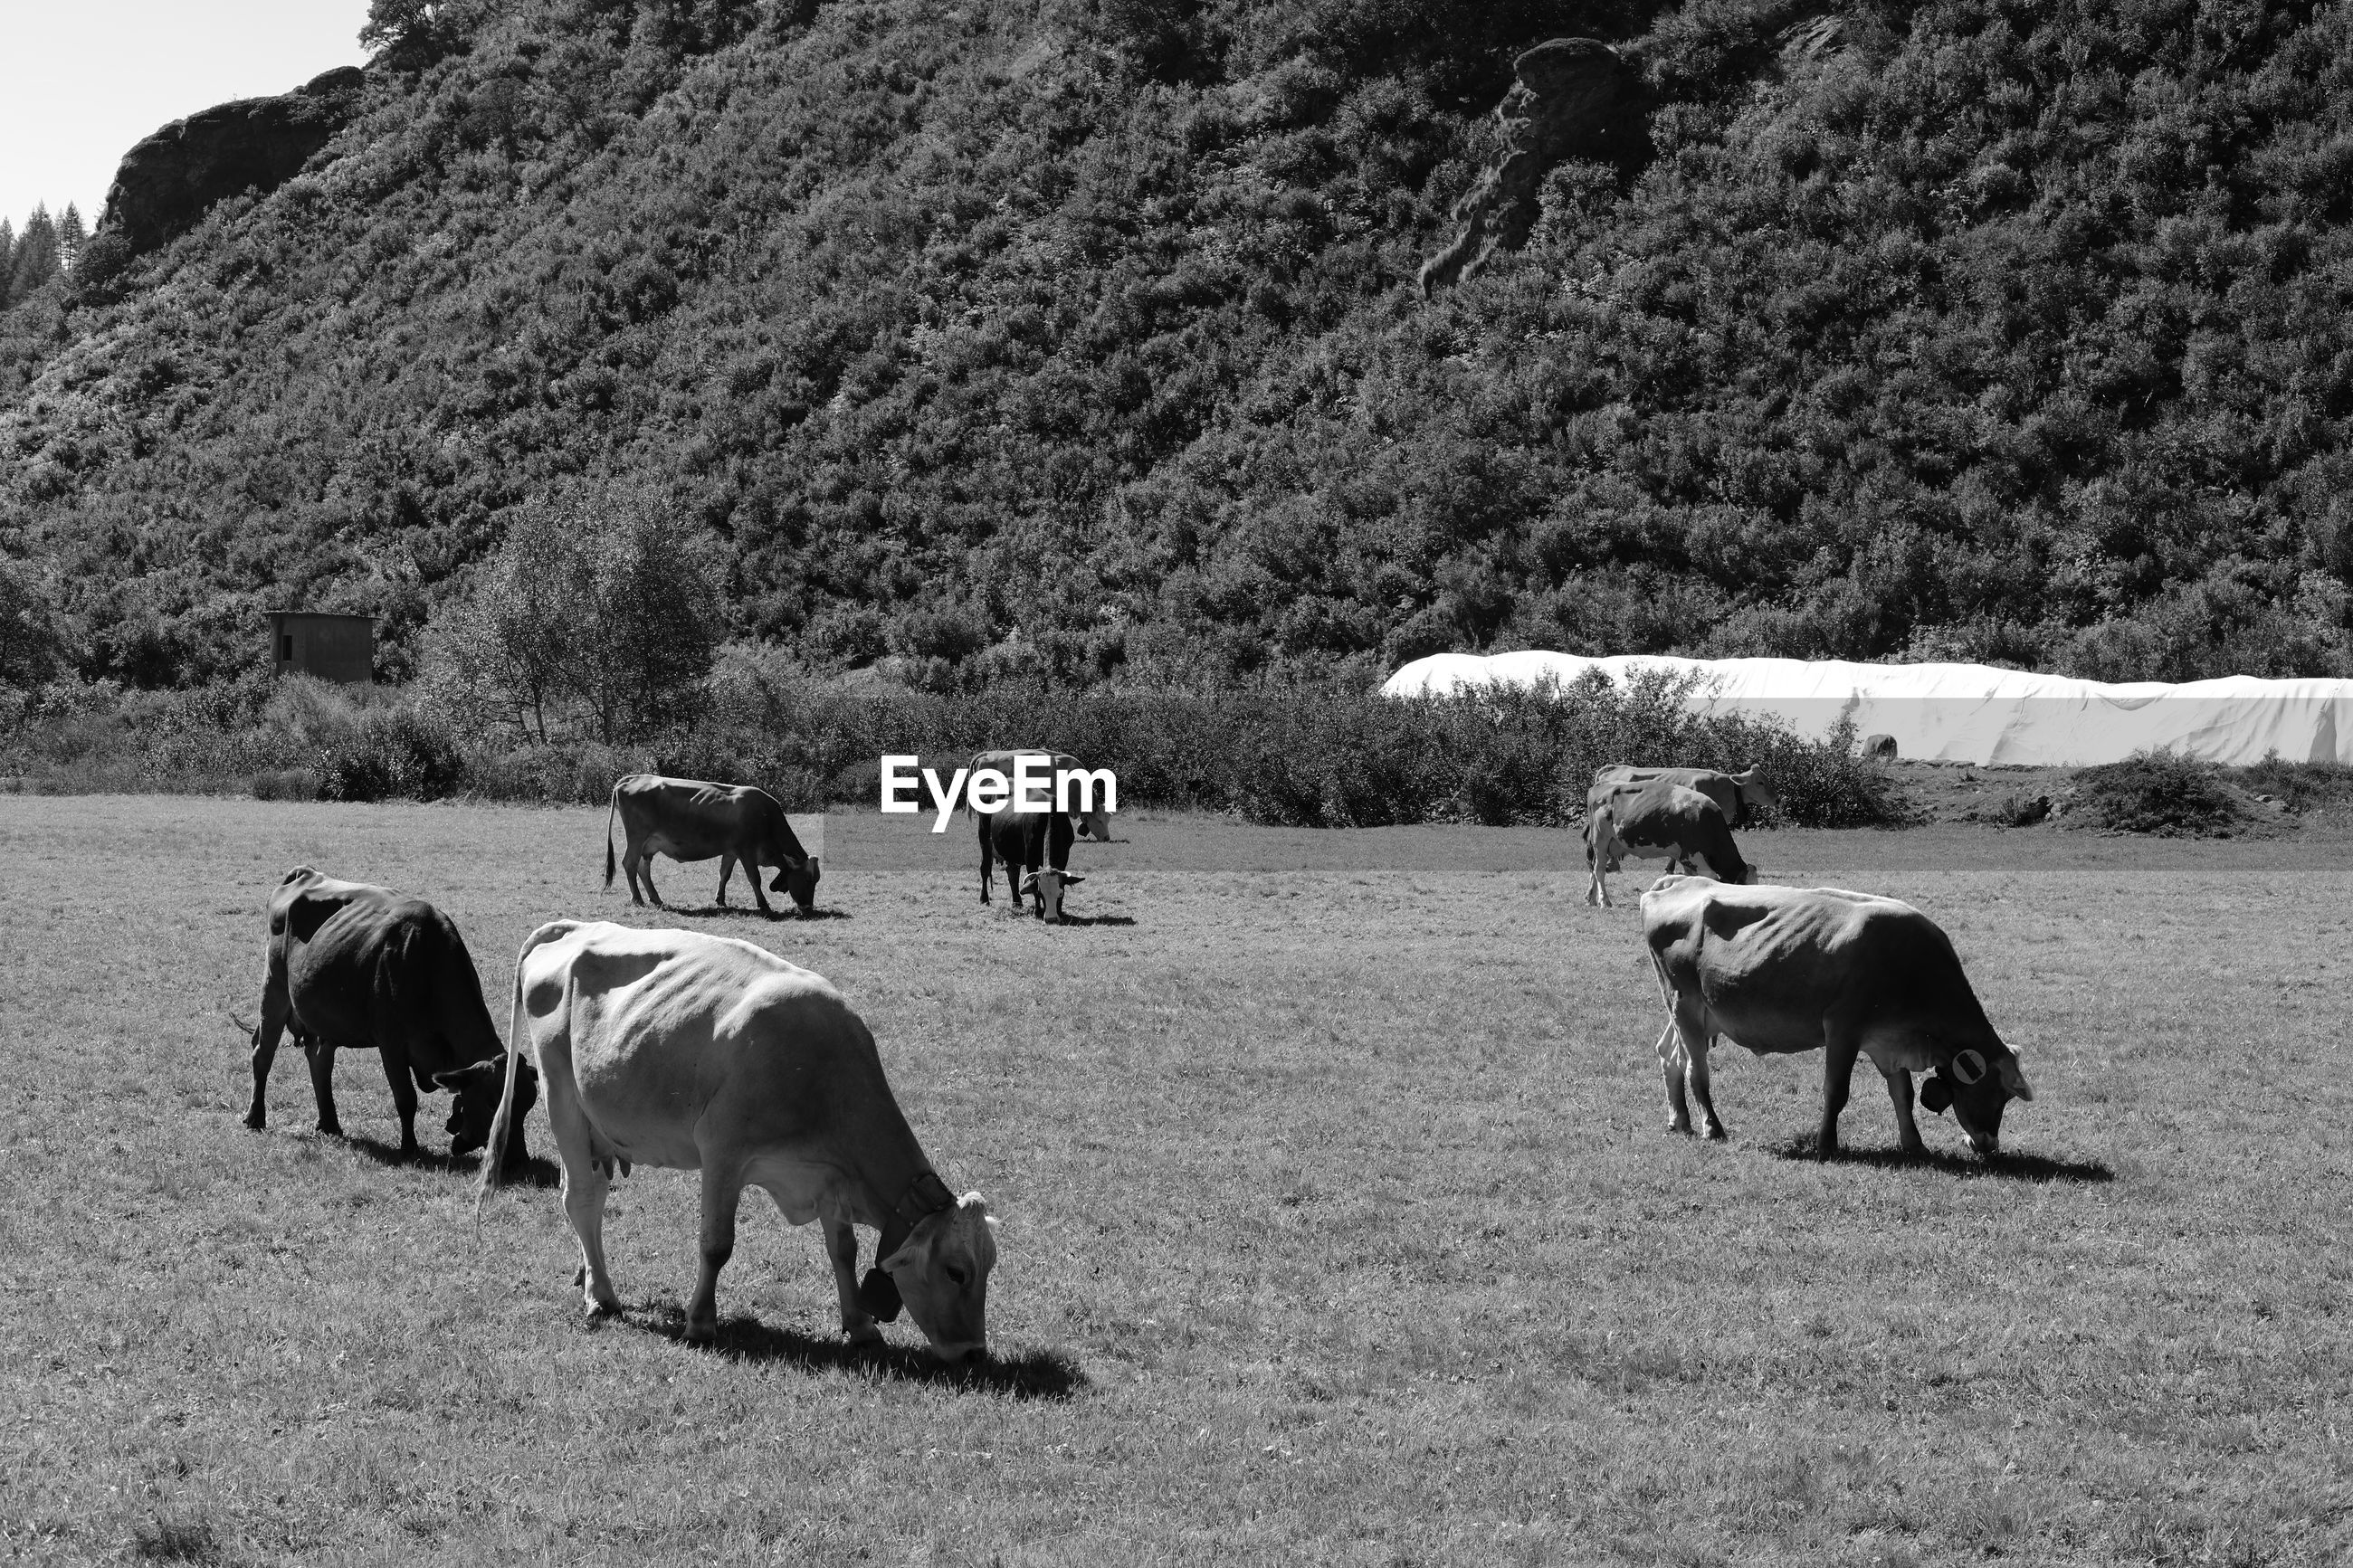 VIEW OF COWS GRAZING IN FIELD